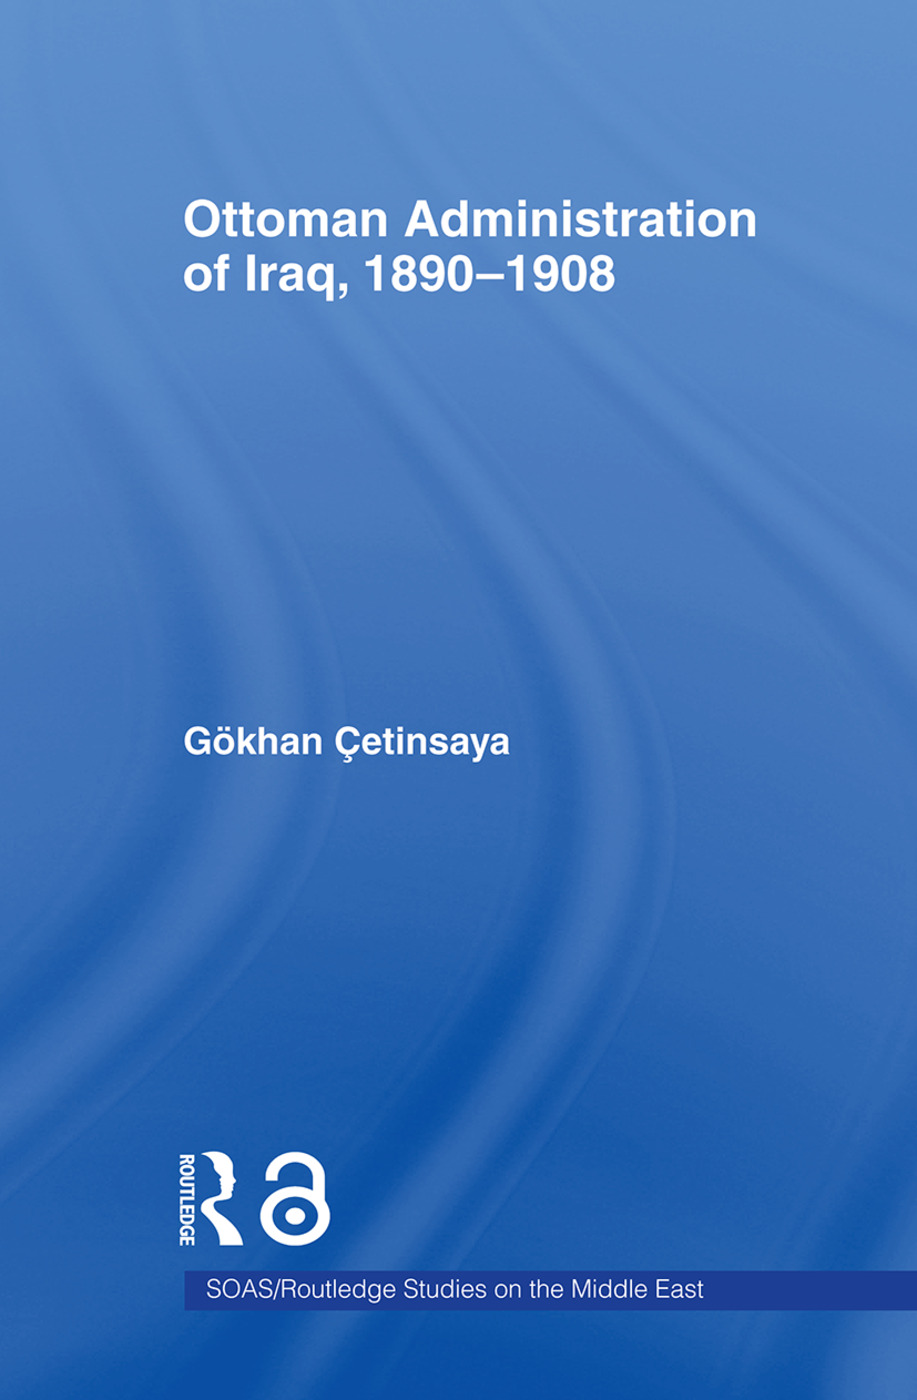 The Ottoman Administration of Iraq, 1890-1908